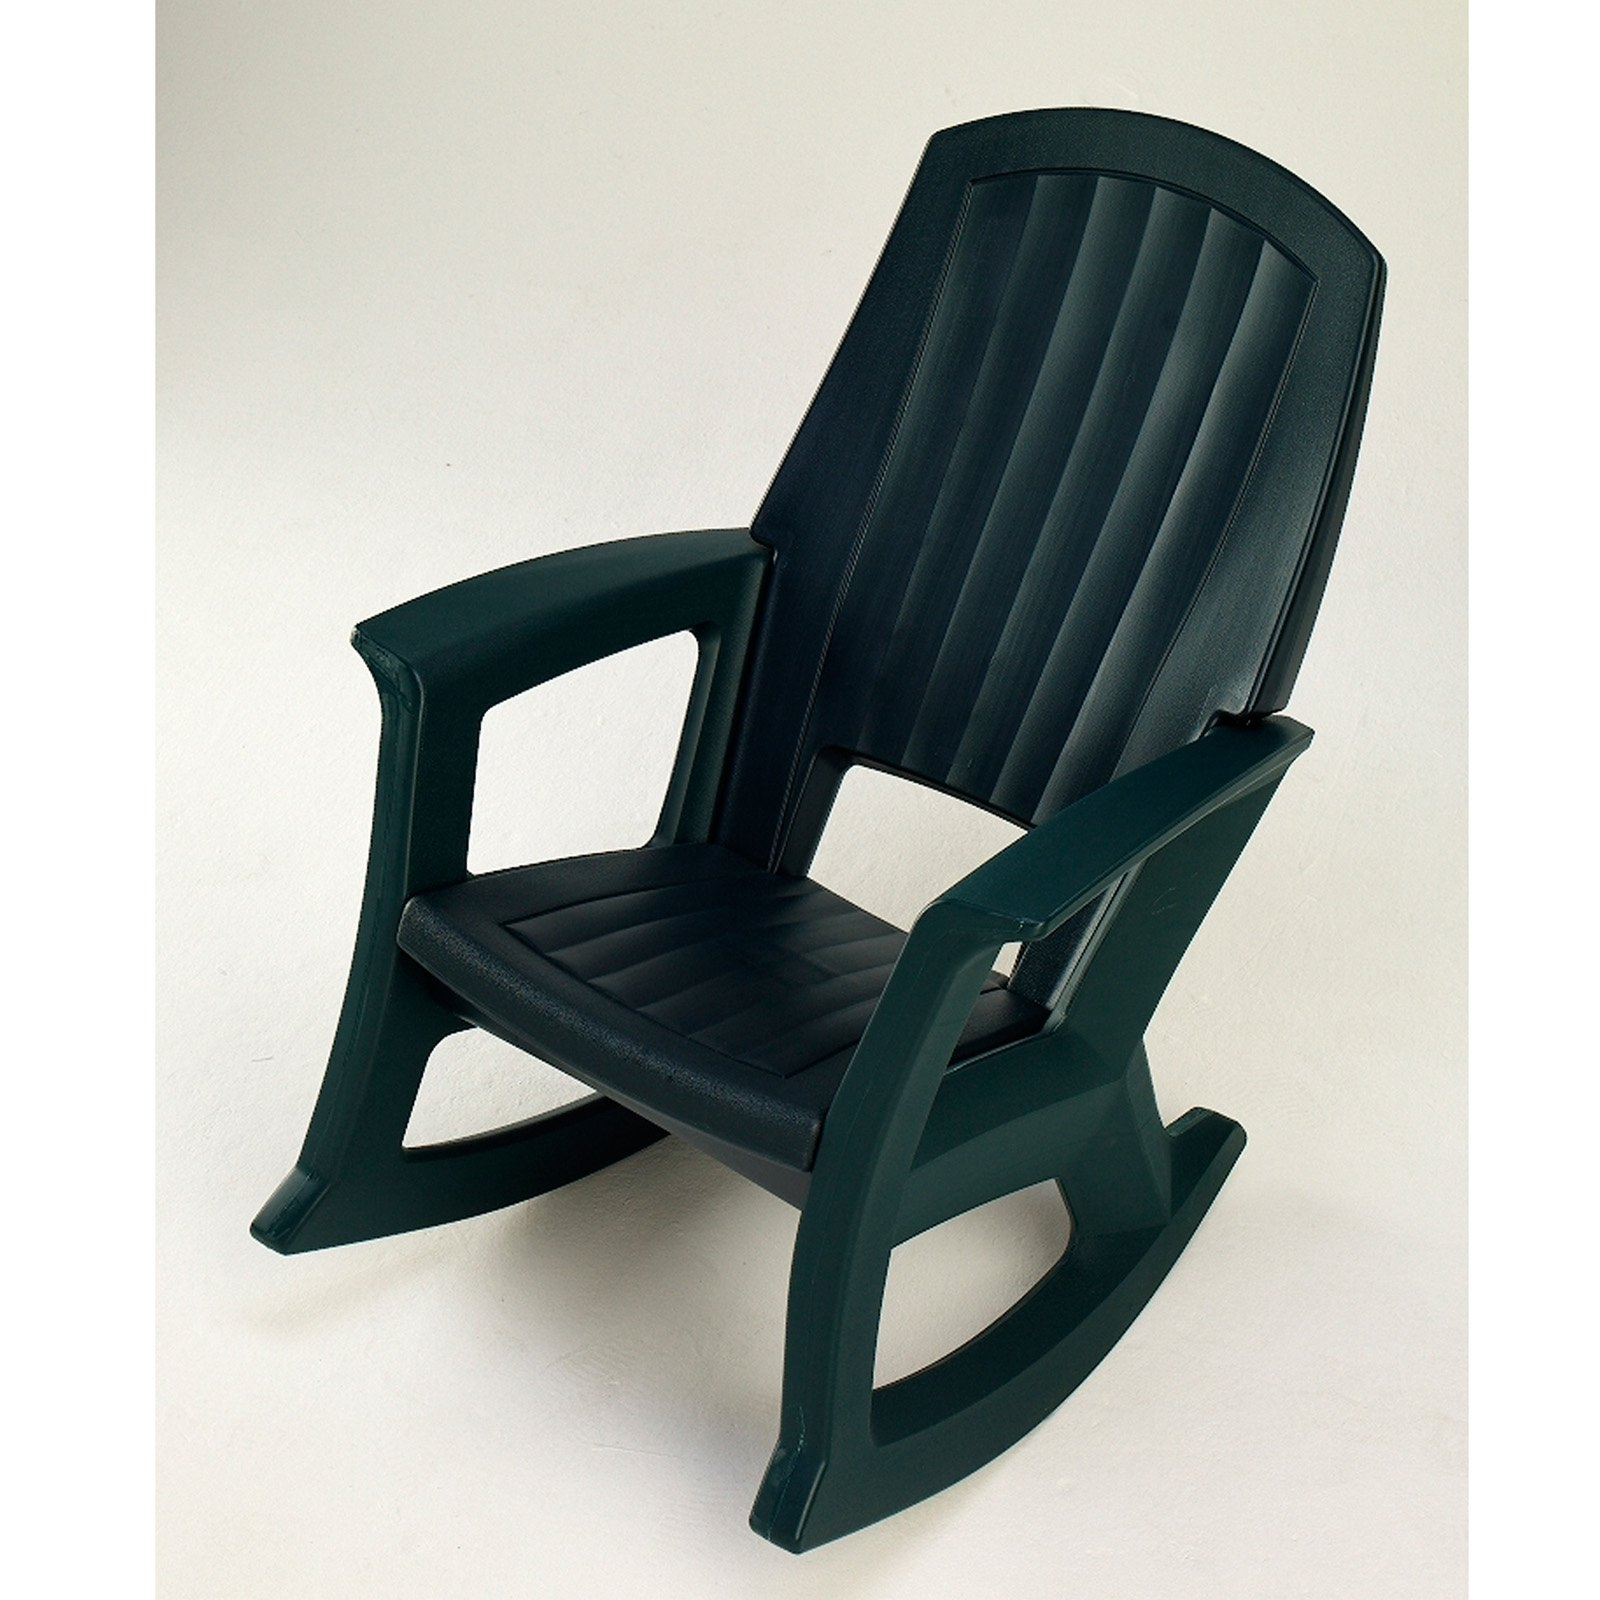 Semco Recycled Plastic Rocking Chair – Walmart For Plastic Patio Rocking Chairs (View 11 of 15)